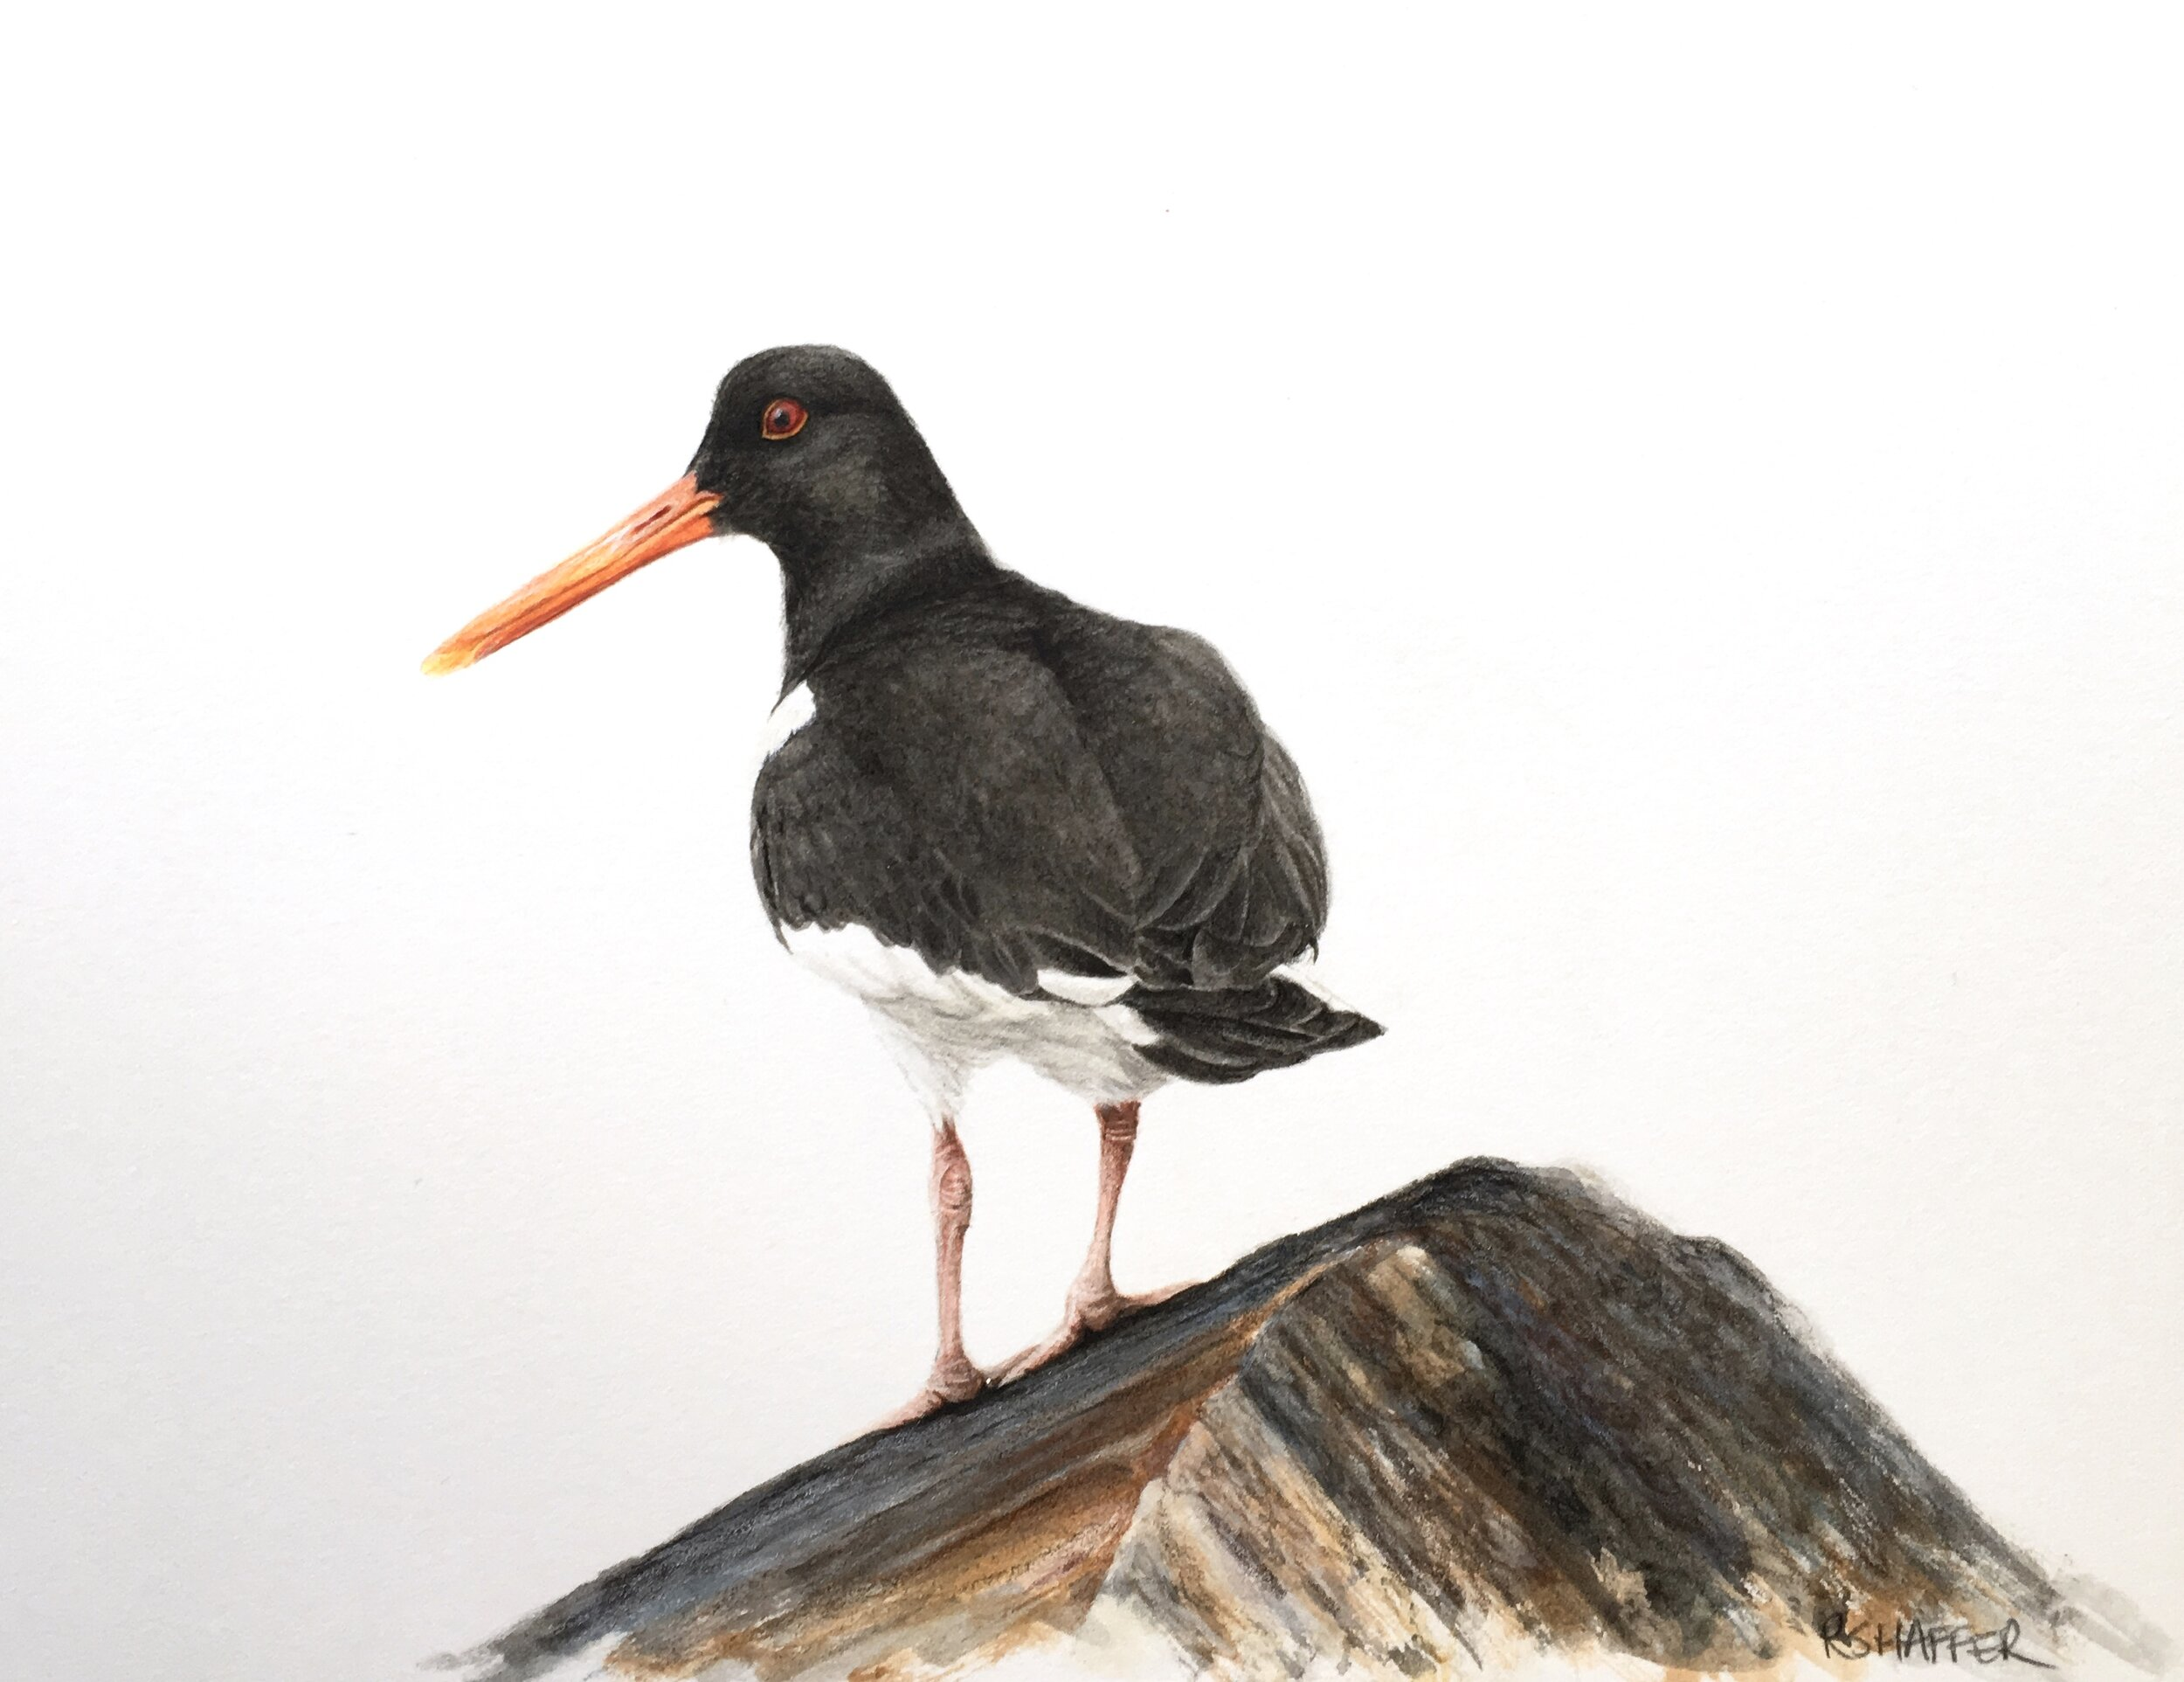 Oystercatcher, 7x9in, watercolor and colored pencil on paper, 2019